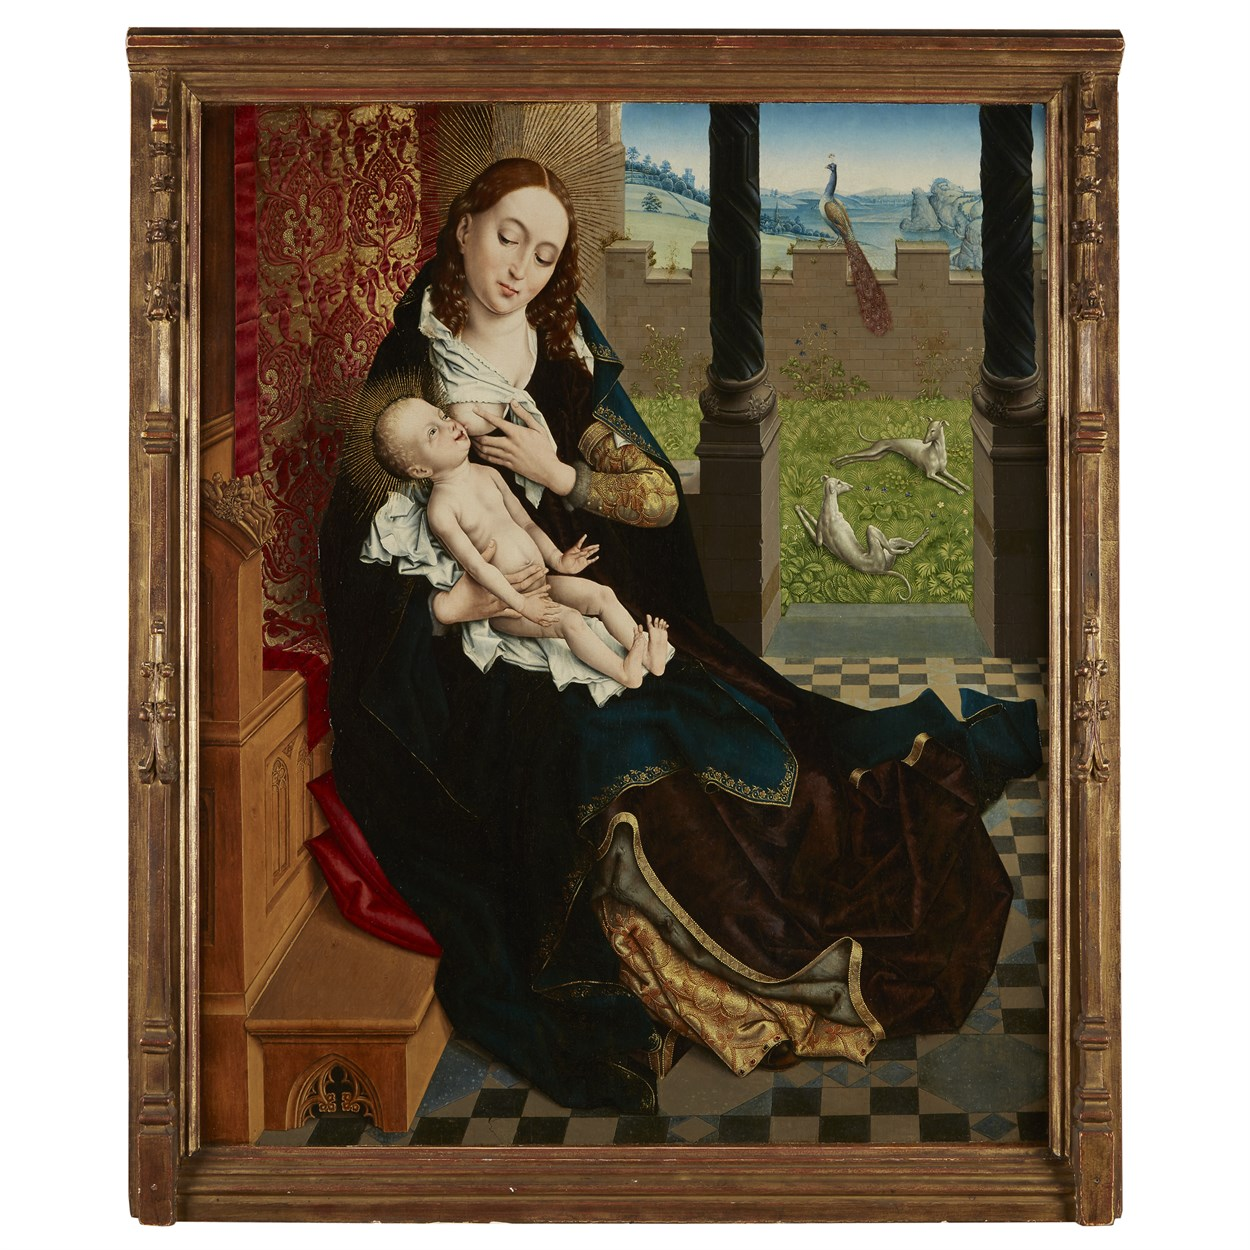 Lot 5 - Master of the Embroidered Foliage (Netherlandish, active Brussels, late 15th Century)